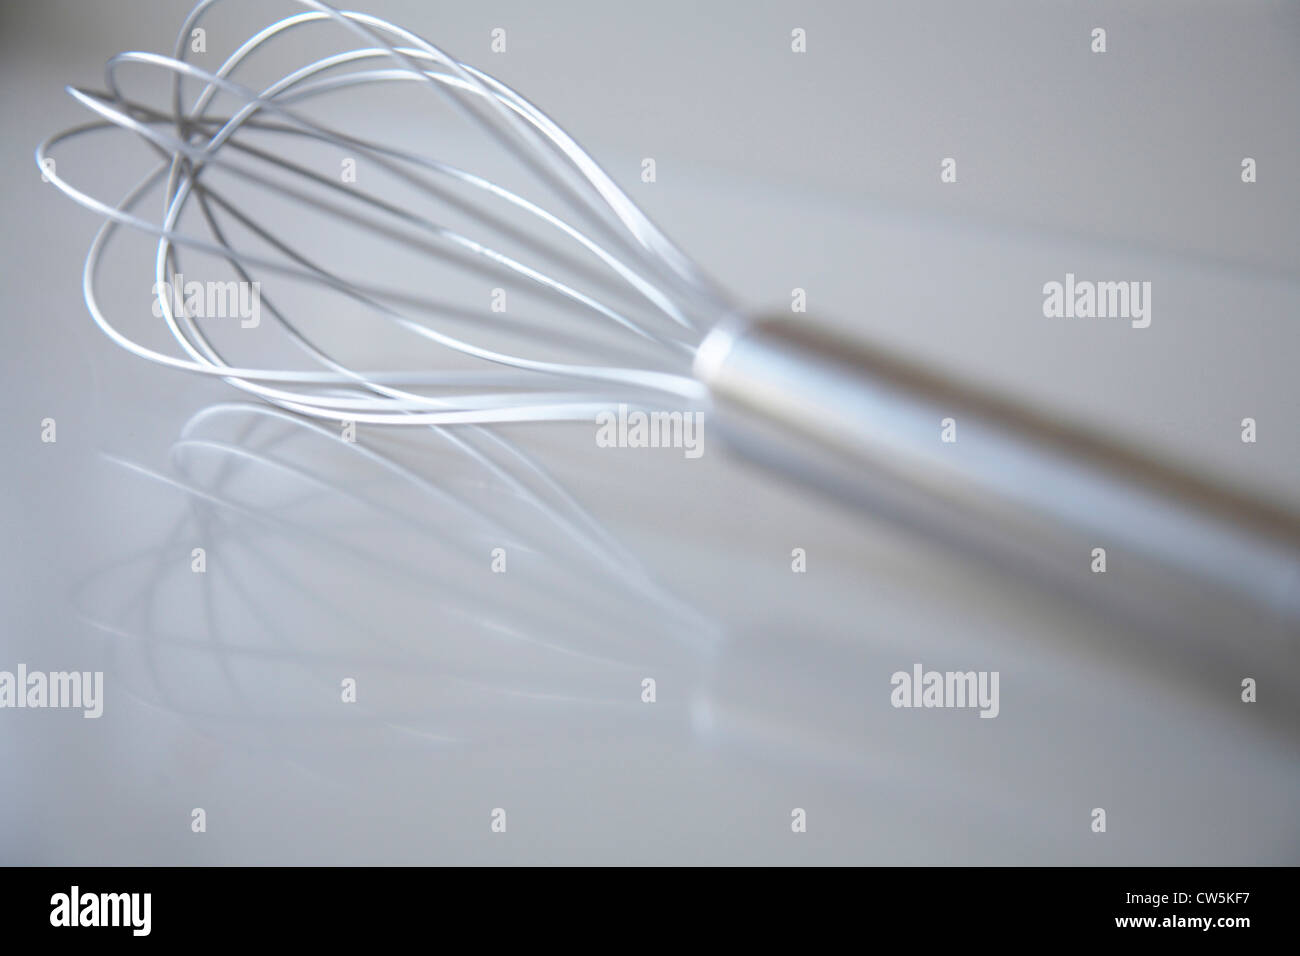 Metal Whisk Stock Photos & Metal Whisk Stock Images - Alamy